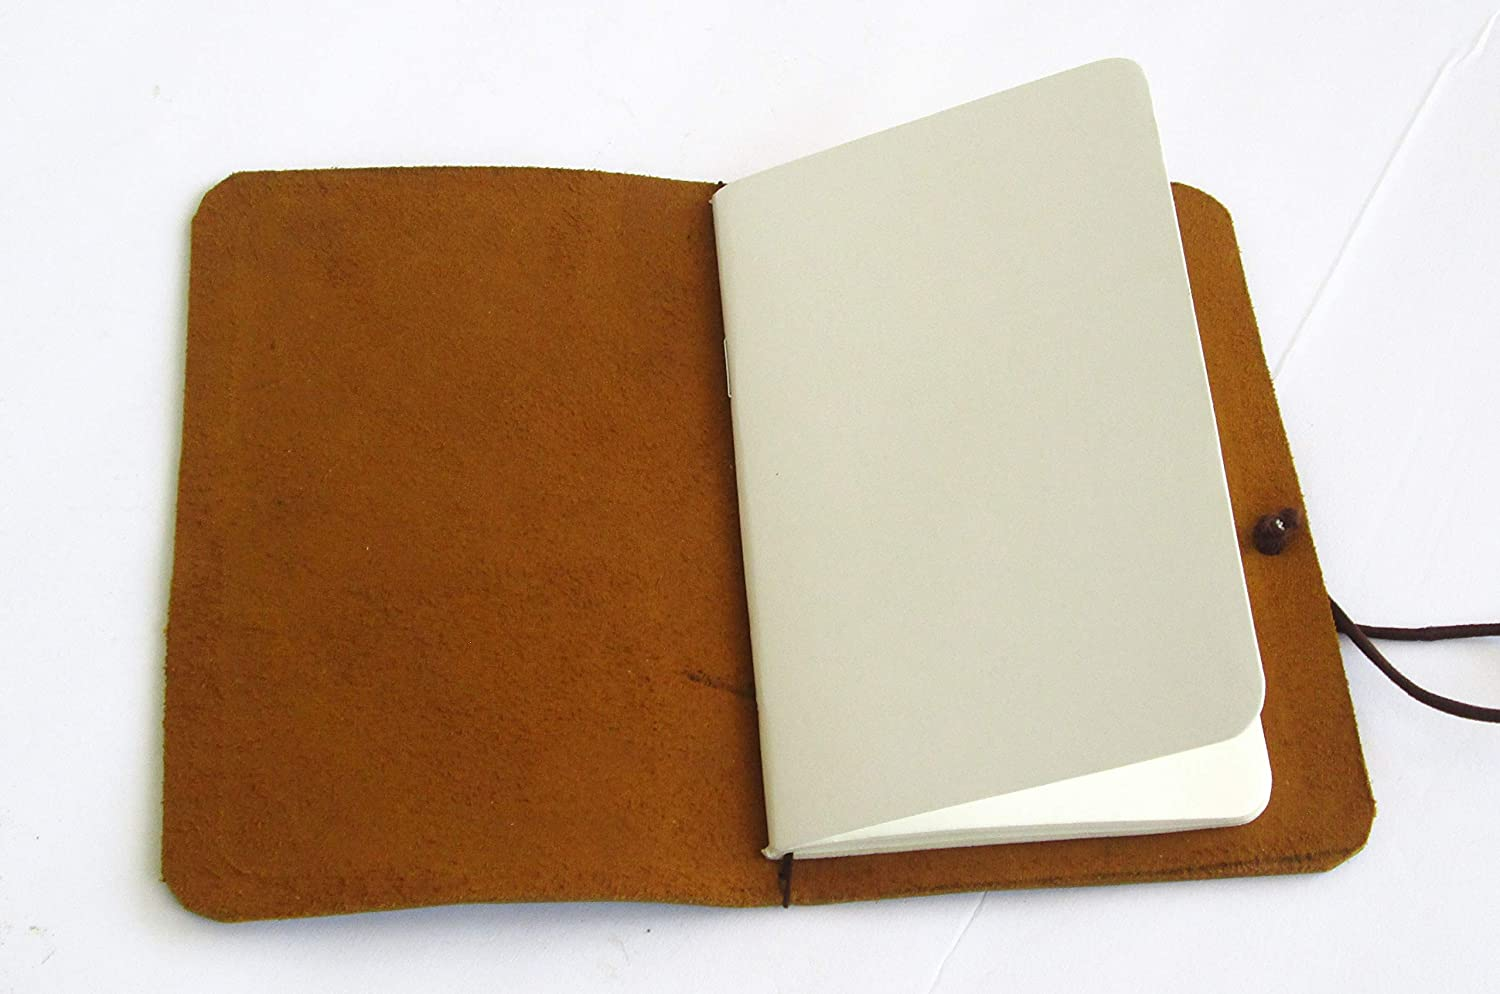 Handmade Cover Soft Leather for Moleskine Cashier or Field Notes Cover Leather Journal 3.5 x 5.5 Travelers Notebook Pocket Size | Refillable | Dark Brown)